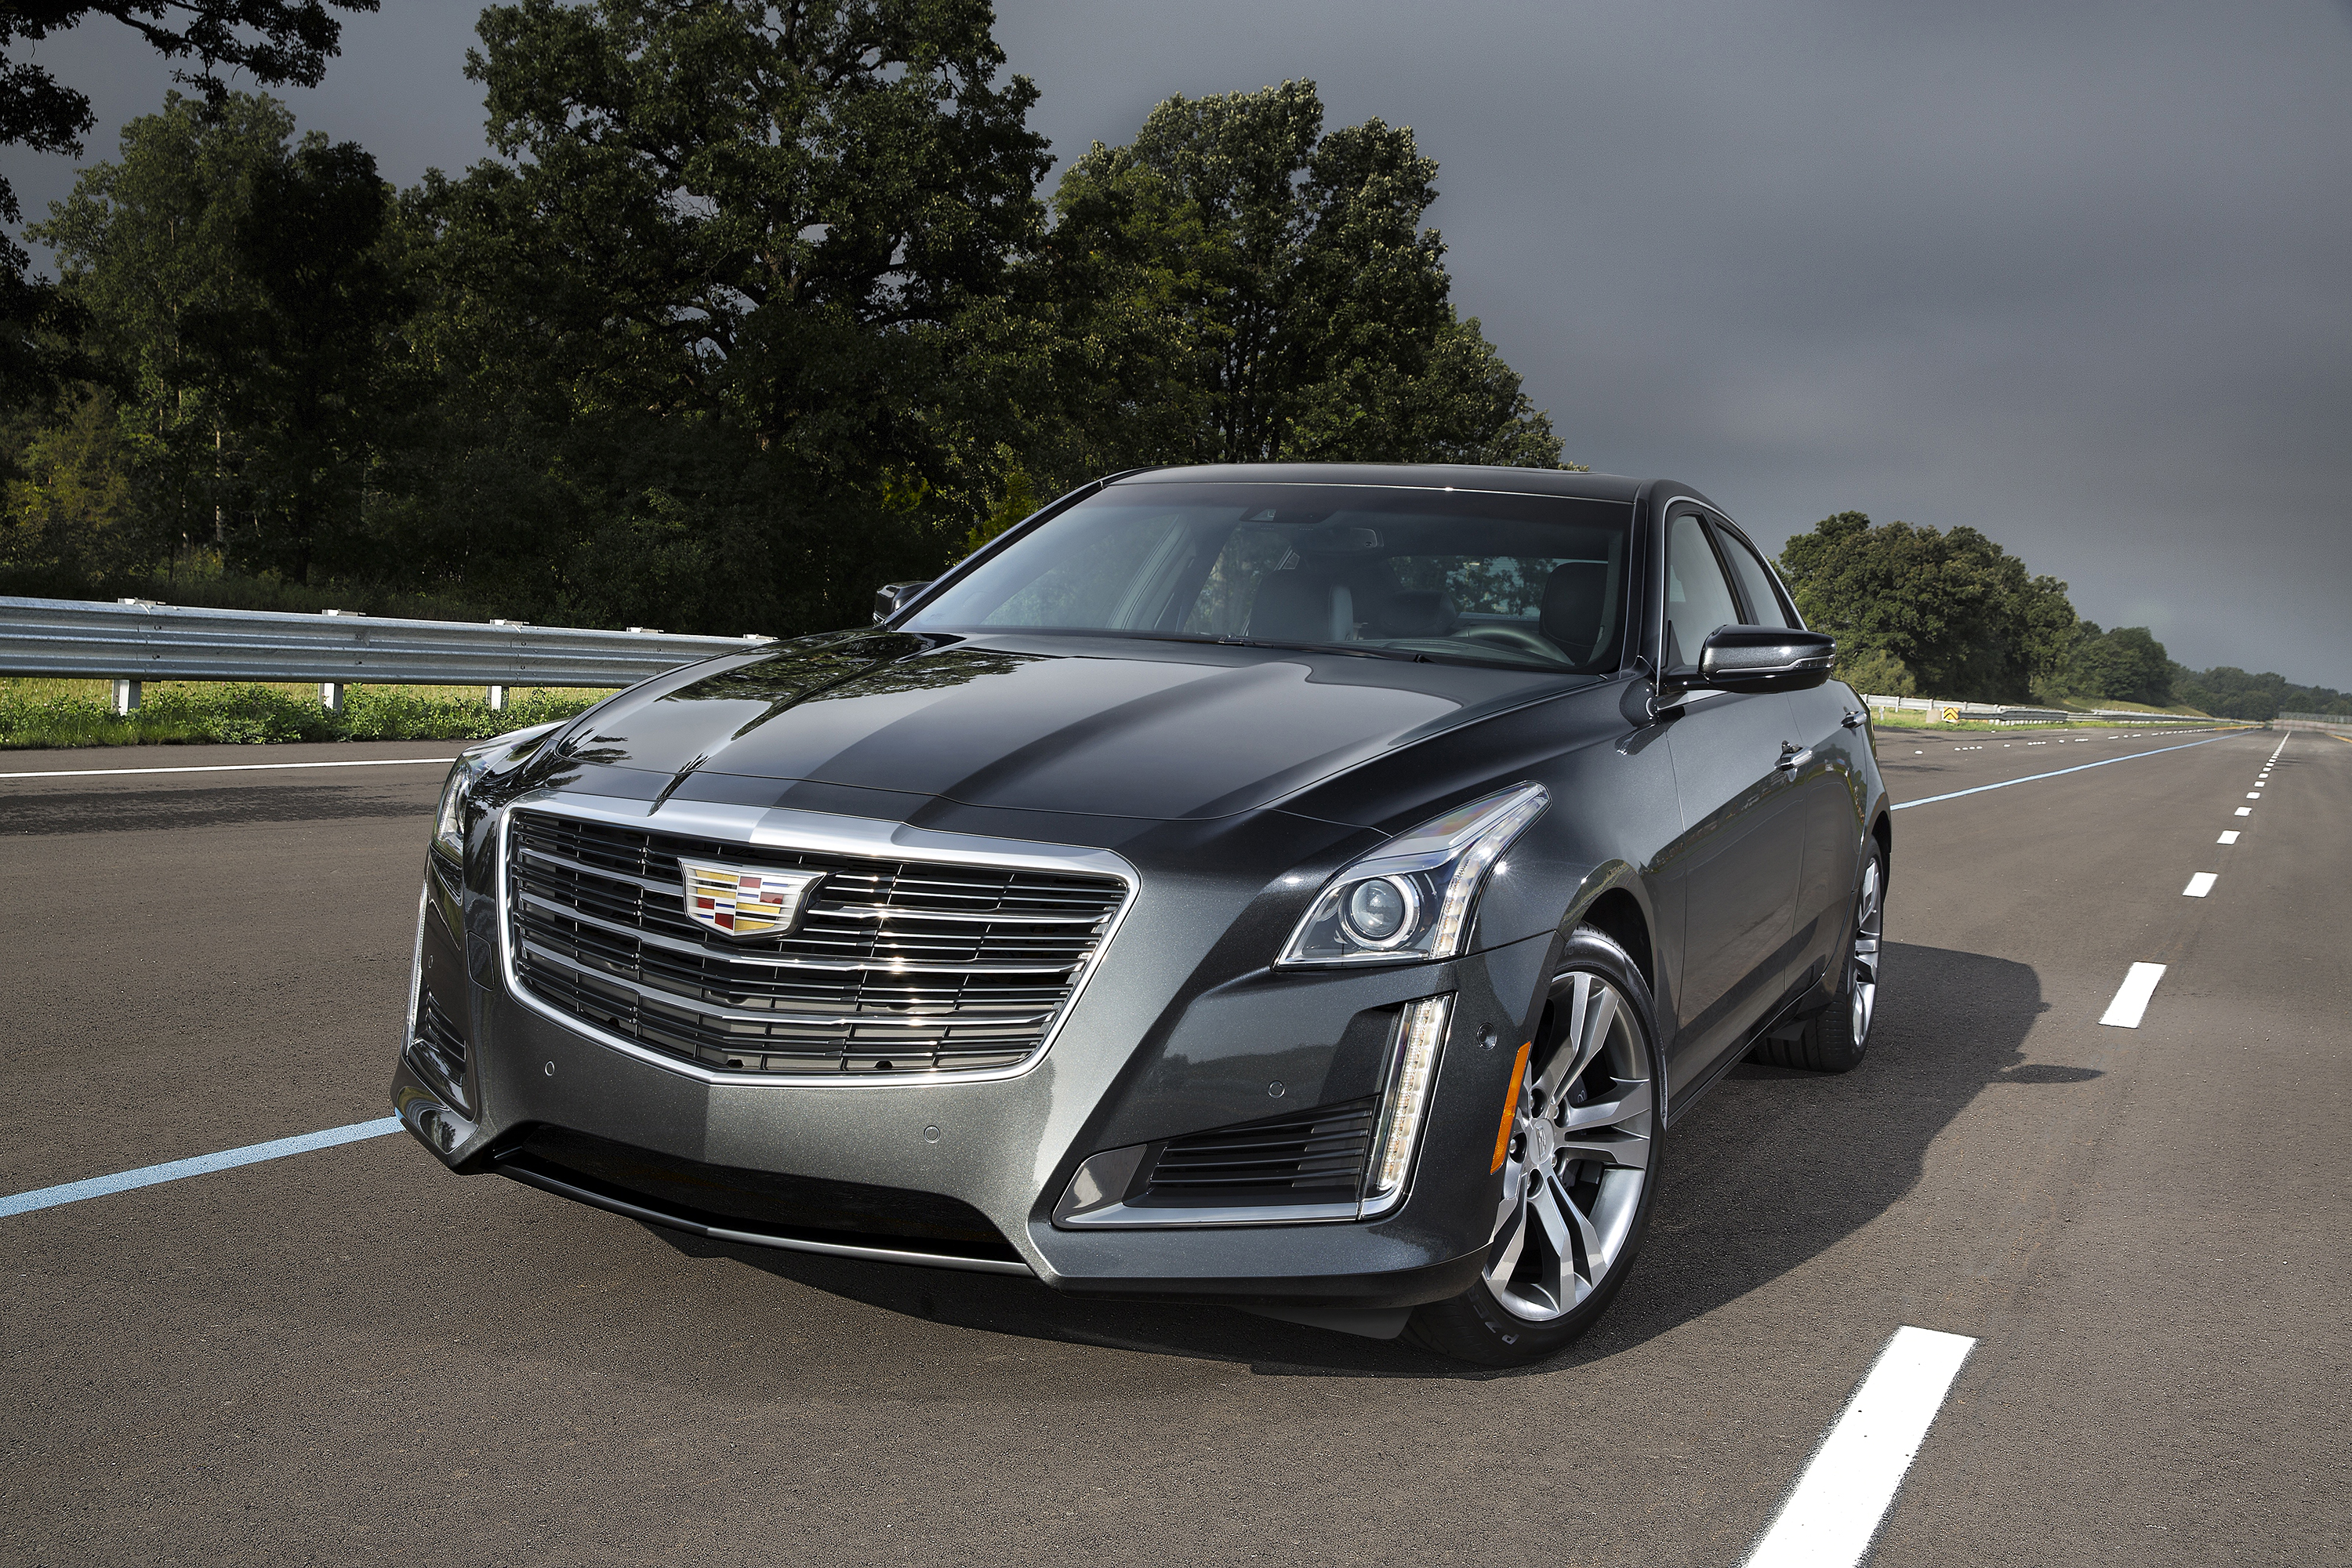 cts the us a news v tag and cadillac in photo price ats gallery europe have